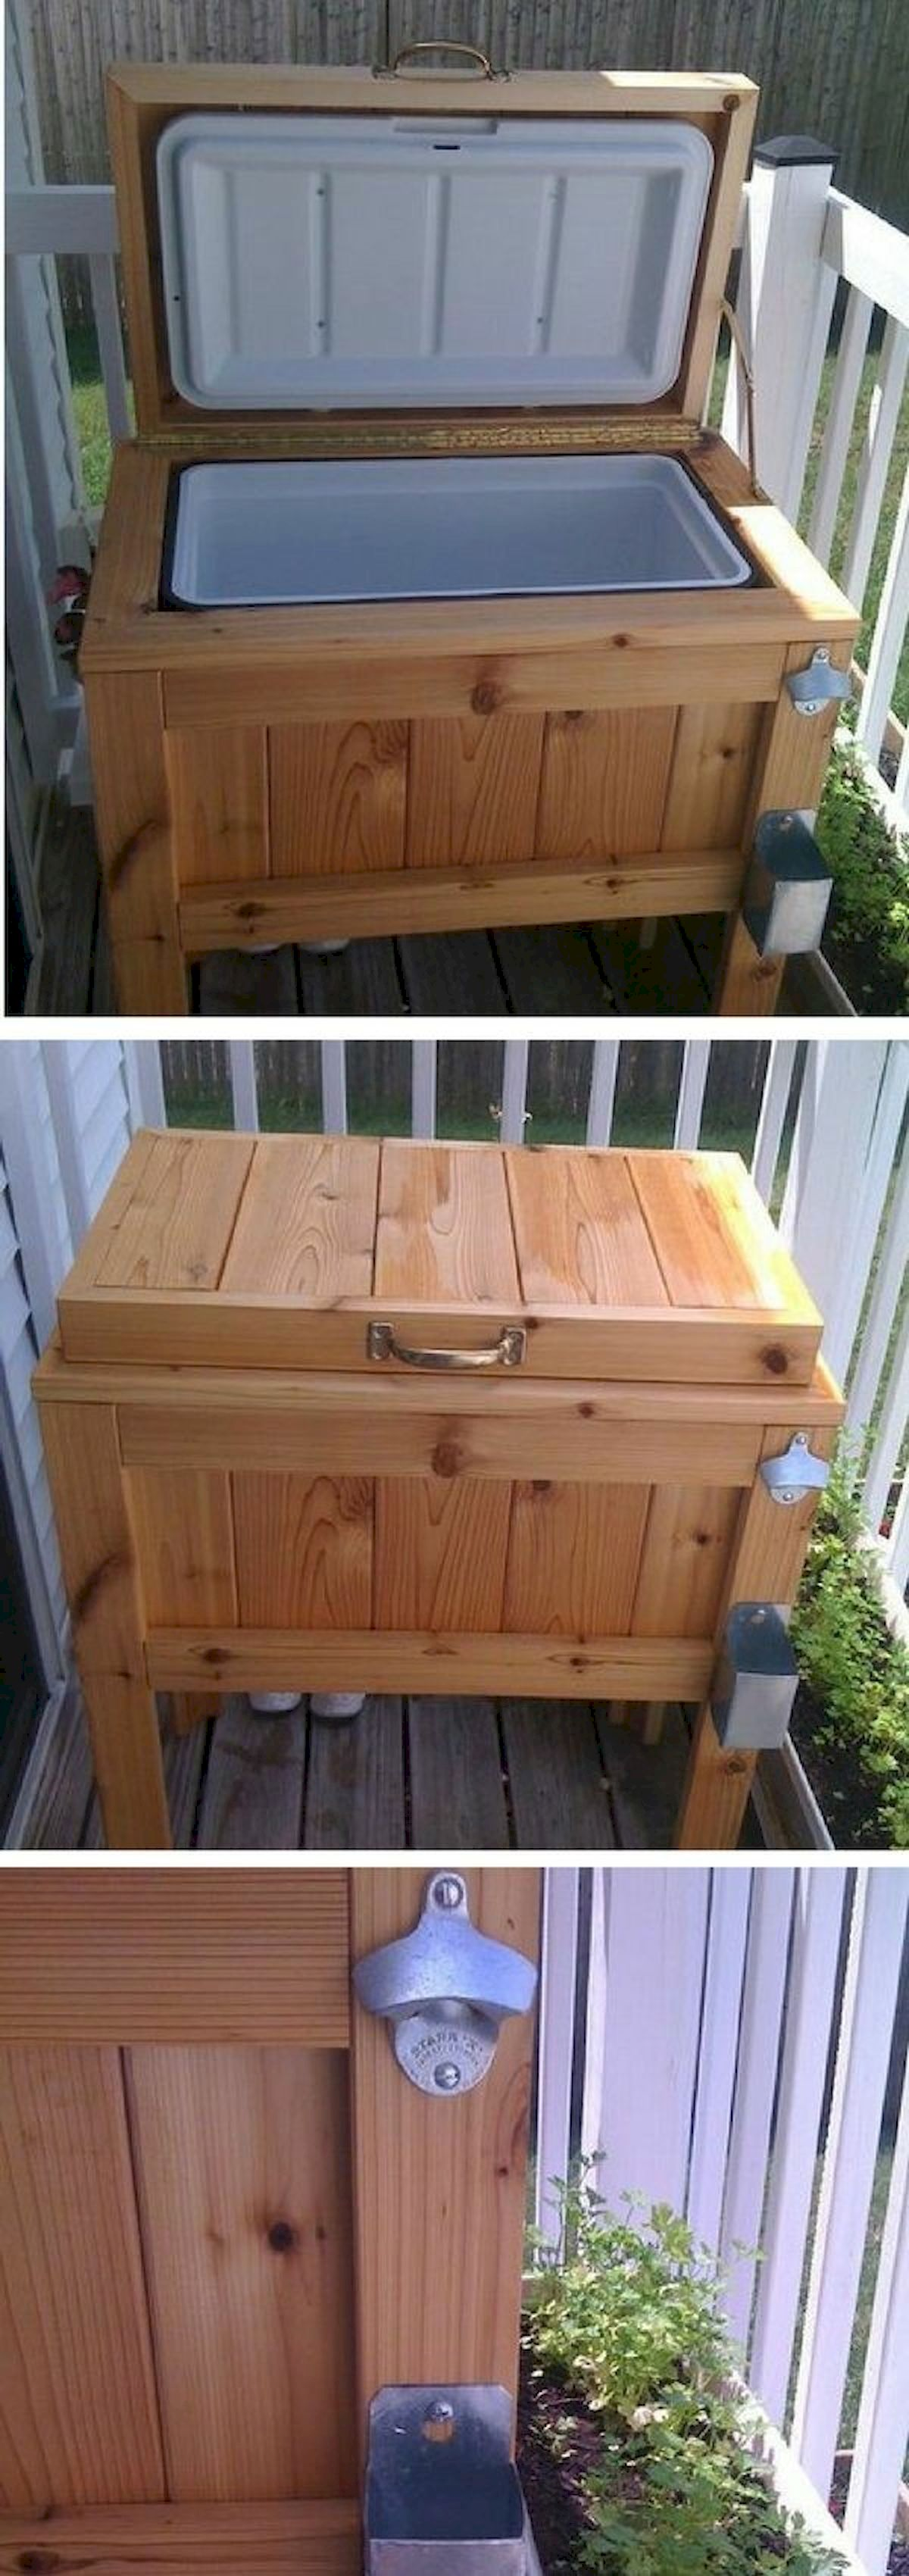 60 Easy DIY Wood Furniture Projects Ideas (27)